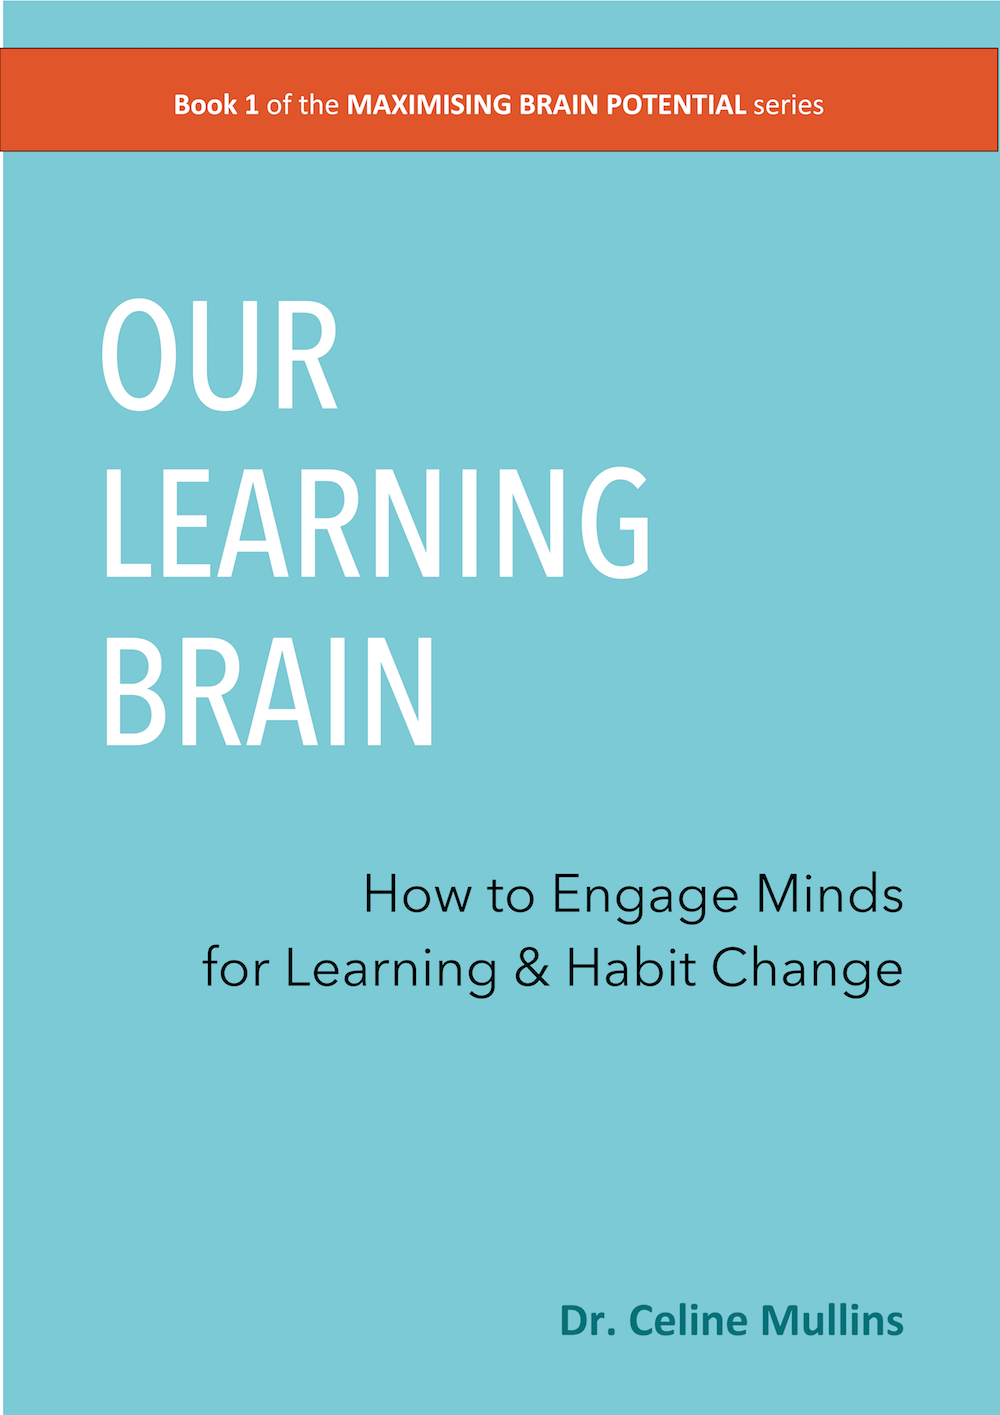 BUY OUR NEW BOOK<br>Our Learning Brain - How to Engage Minds for Learning by Dr Celine Mullins